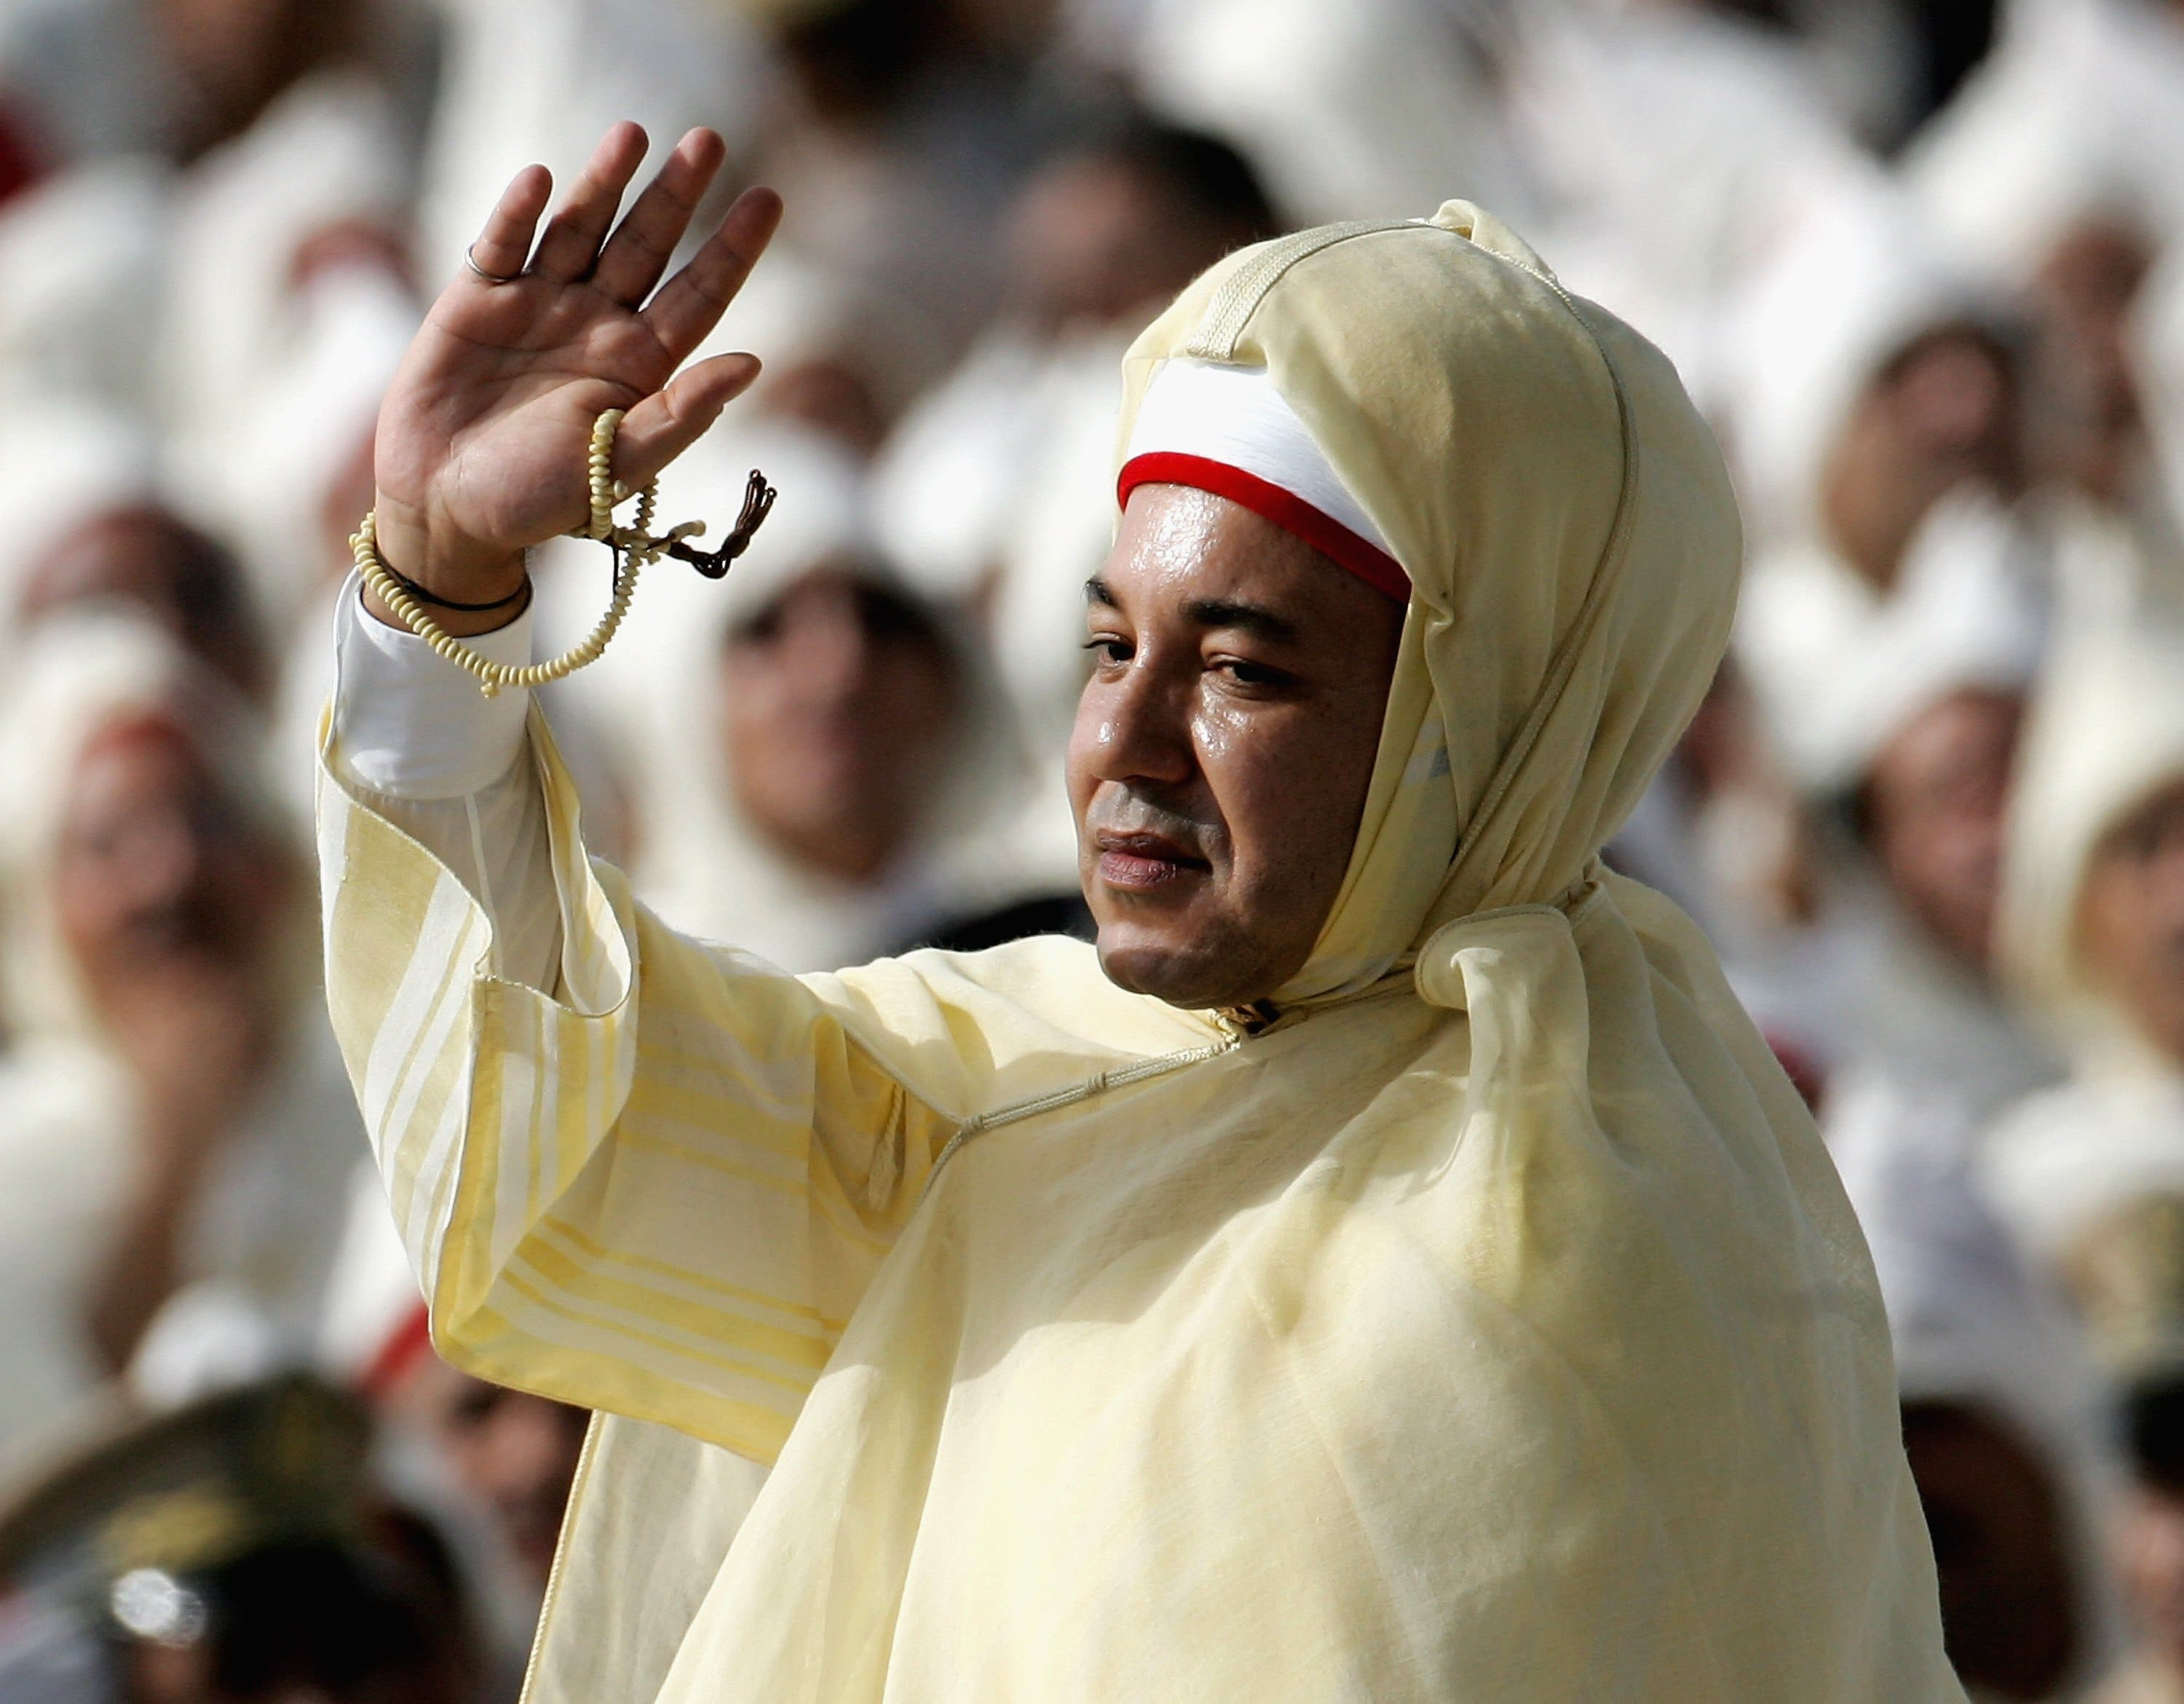 It is not the King Mohammed VI of Morocco that is to blame for the malaise in his country.